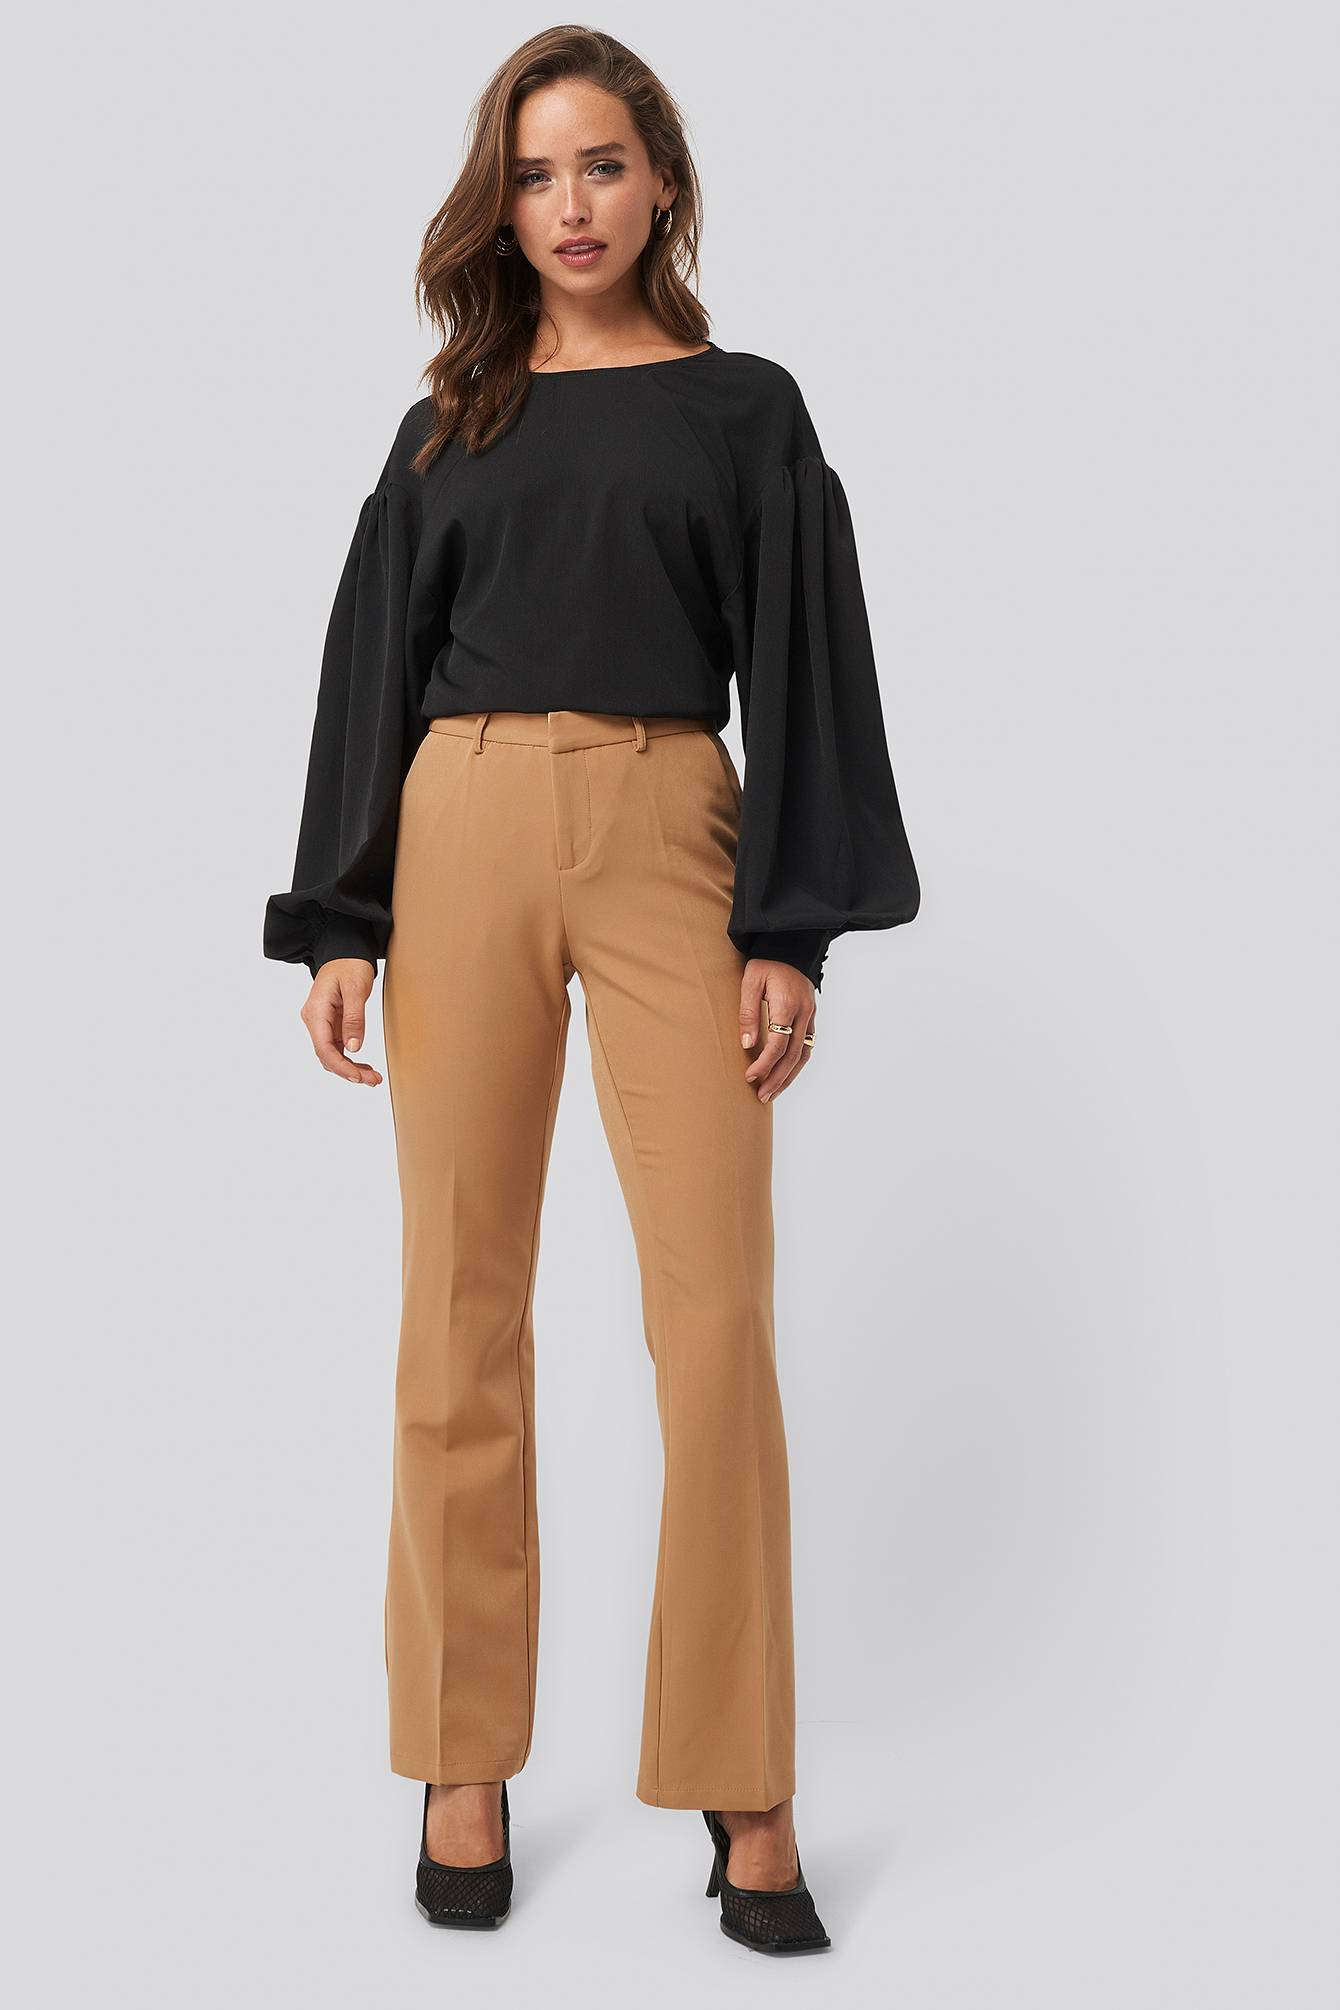 Sisters Point Veka Pants - Brown  - Size: Small